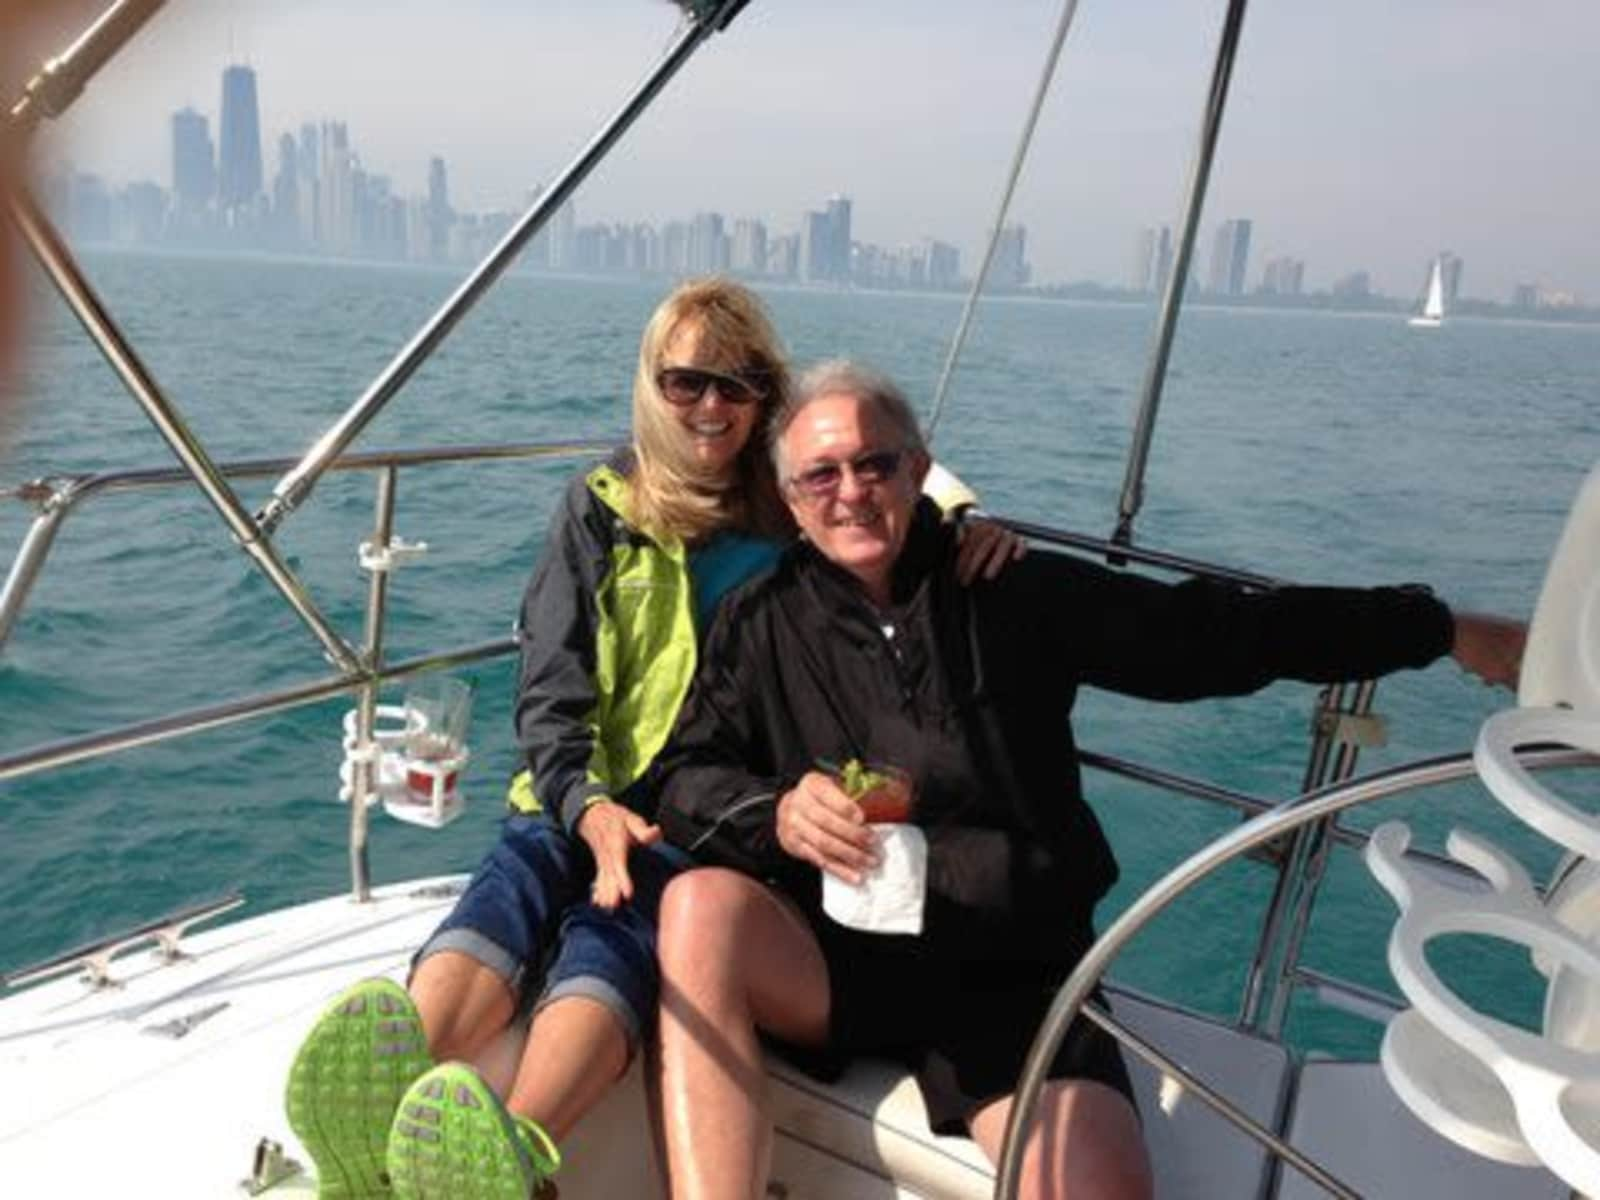 Randy & Debbie from DeKalb, Illinois, United States